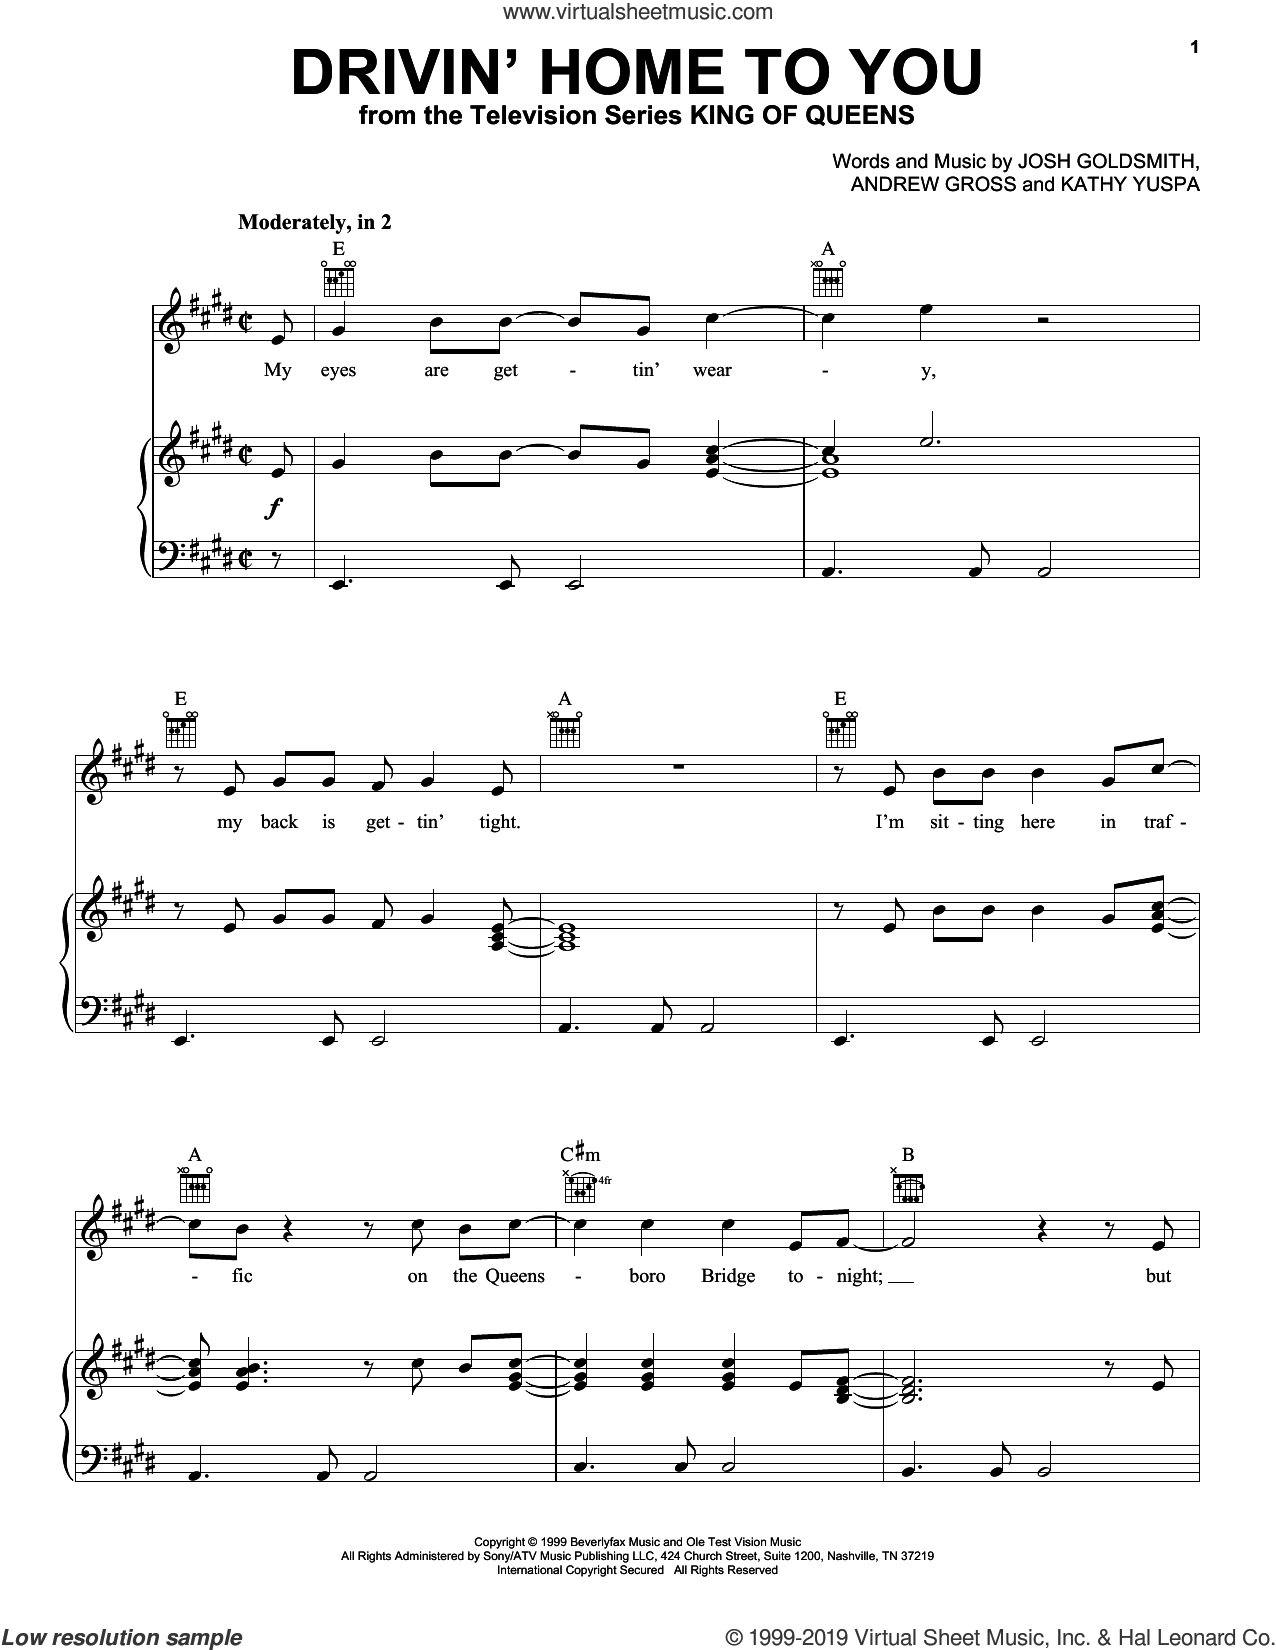 Drivin' Home To You (from King of Queens) sheet music for voice, piano or guitar by Billy Vera, Andrew Gross, Josh Goldsmith and Kathy Yuspa, intermediate skill level